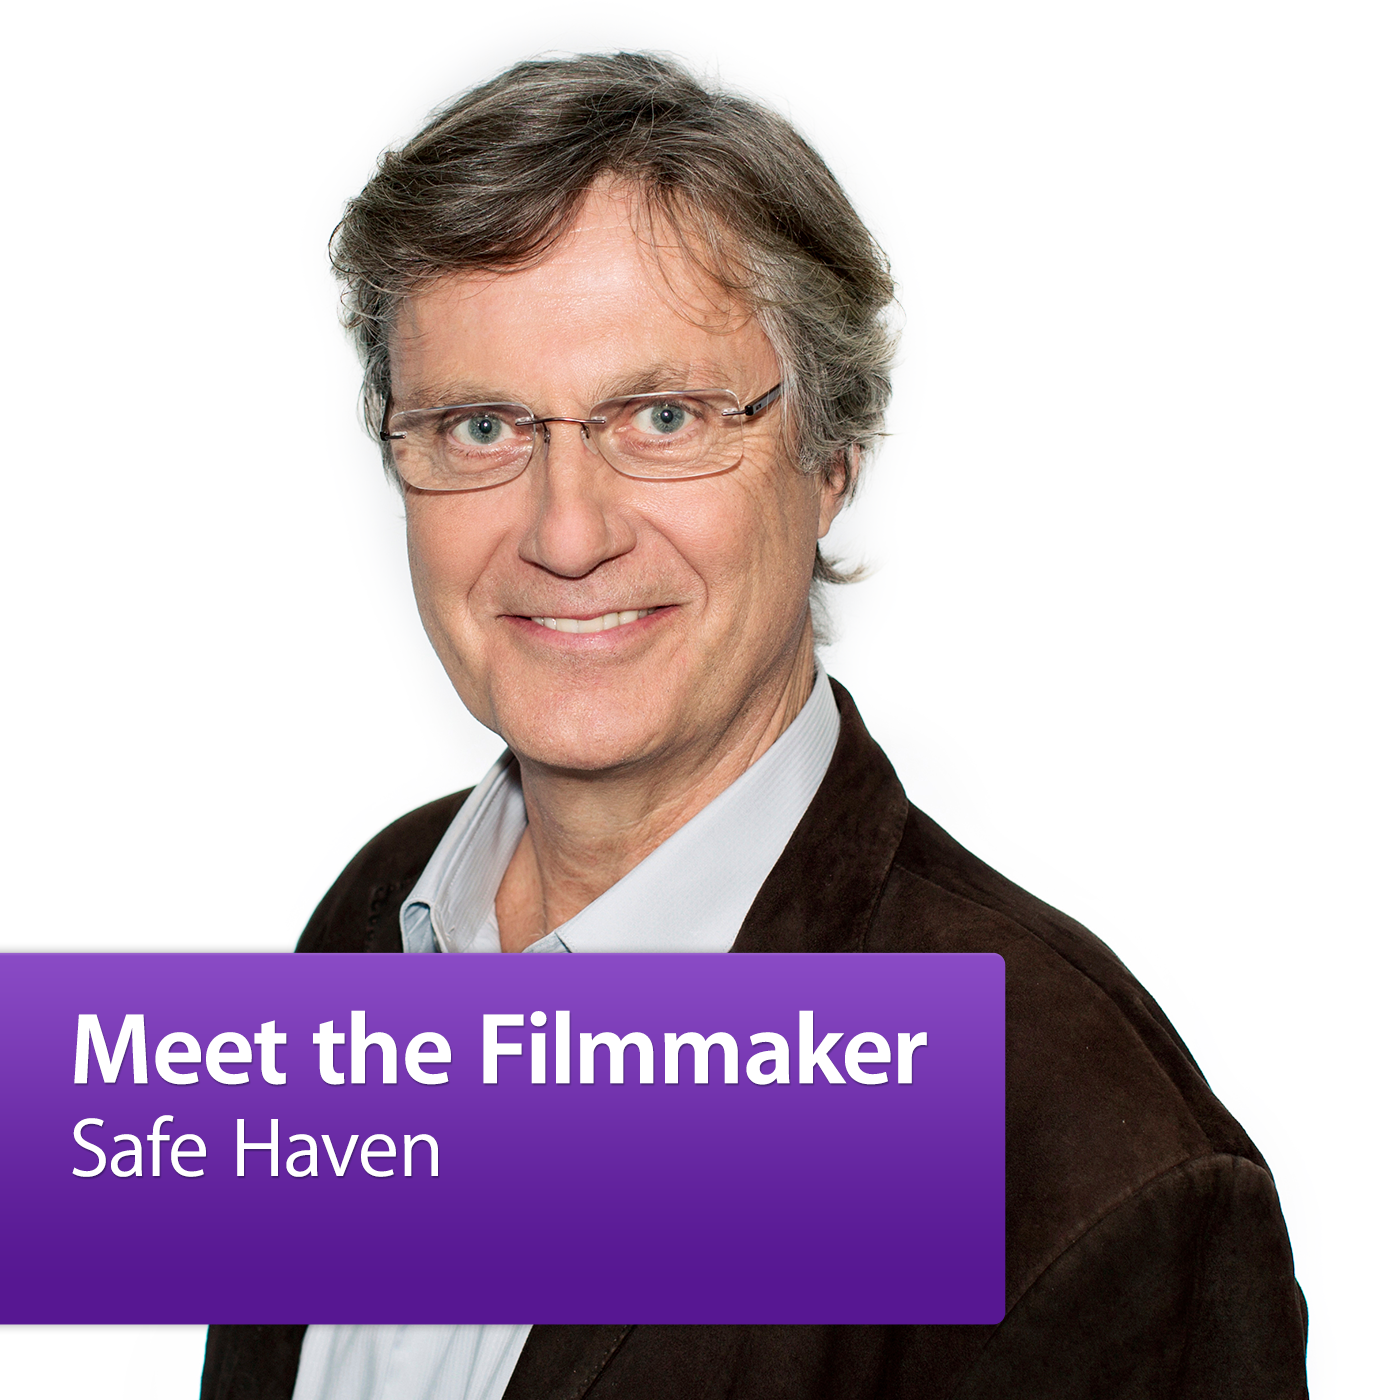 Safe Haven: Meet the Filmmaker